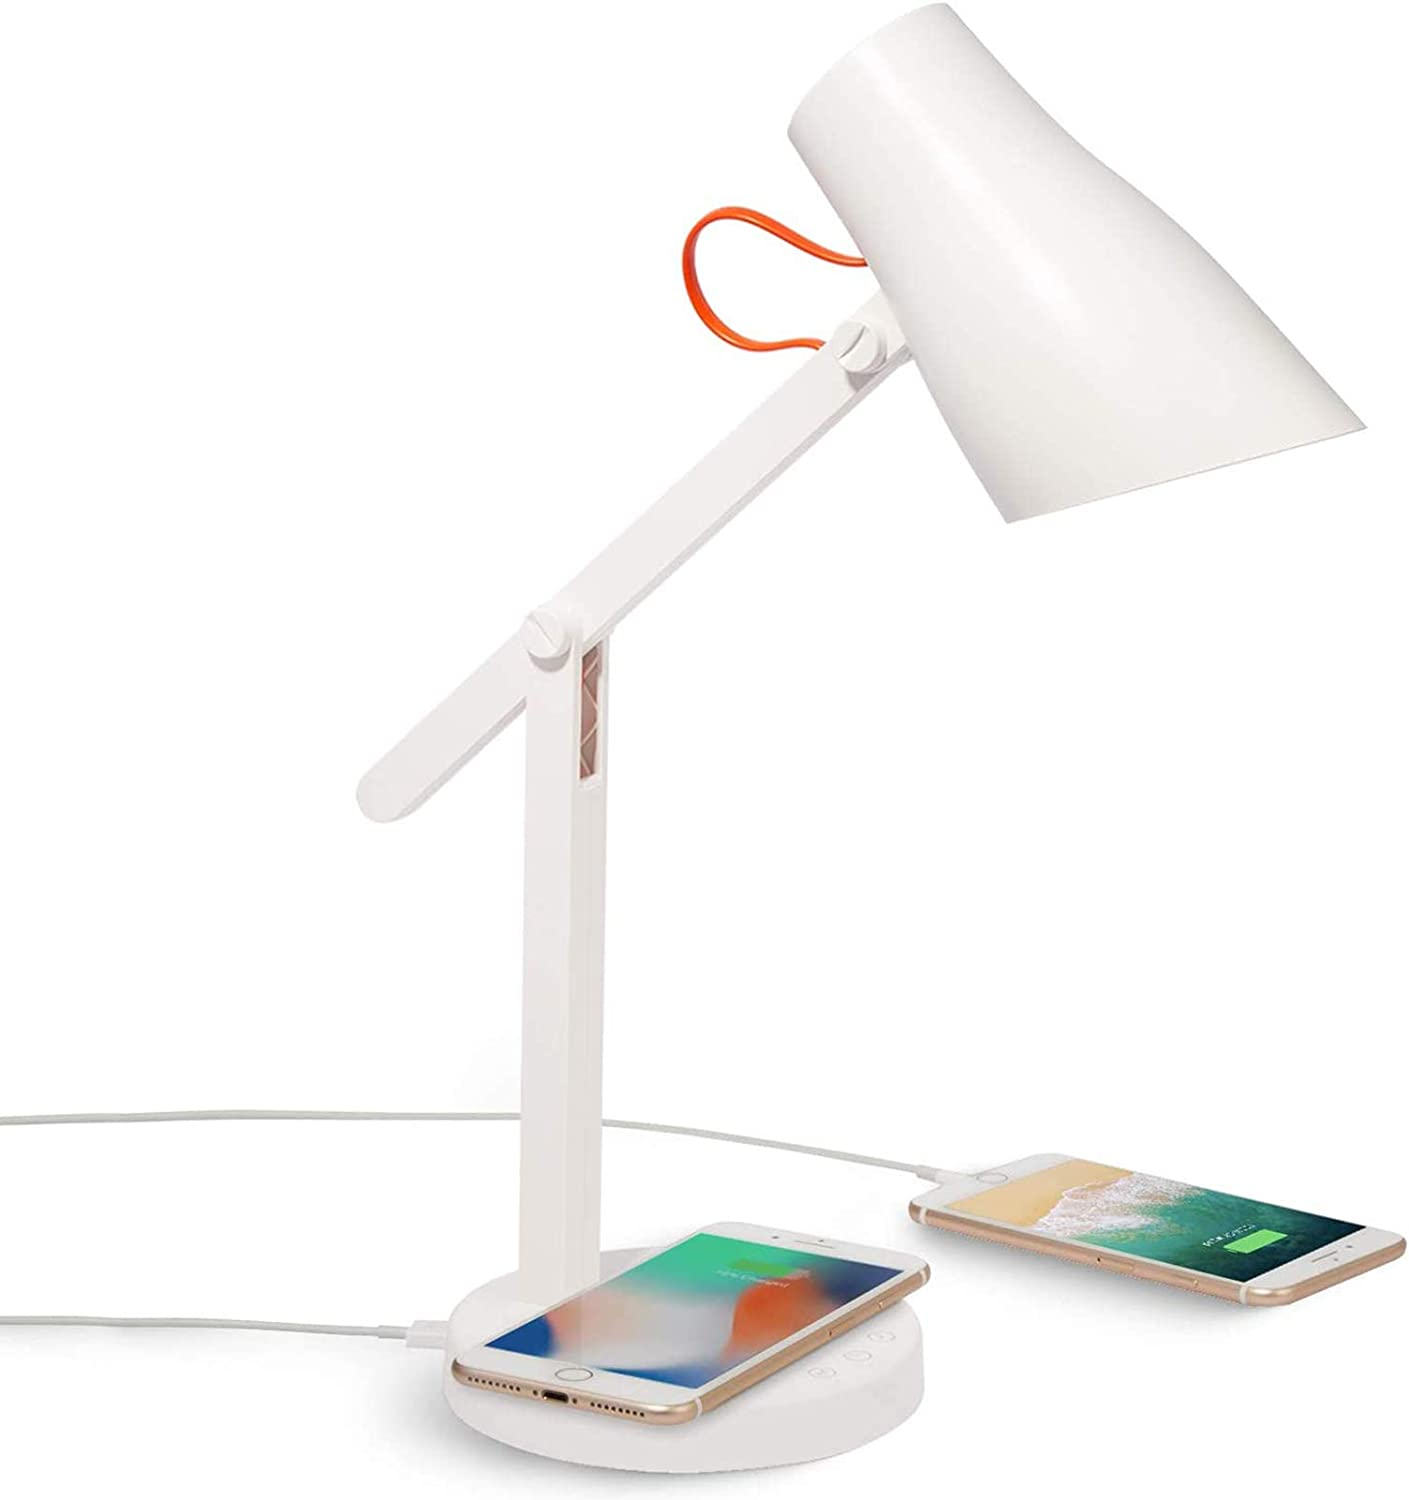 LED Lamp Super sale period limited Wireless Charging Bedside Popular product Light Charger USB with Desk